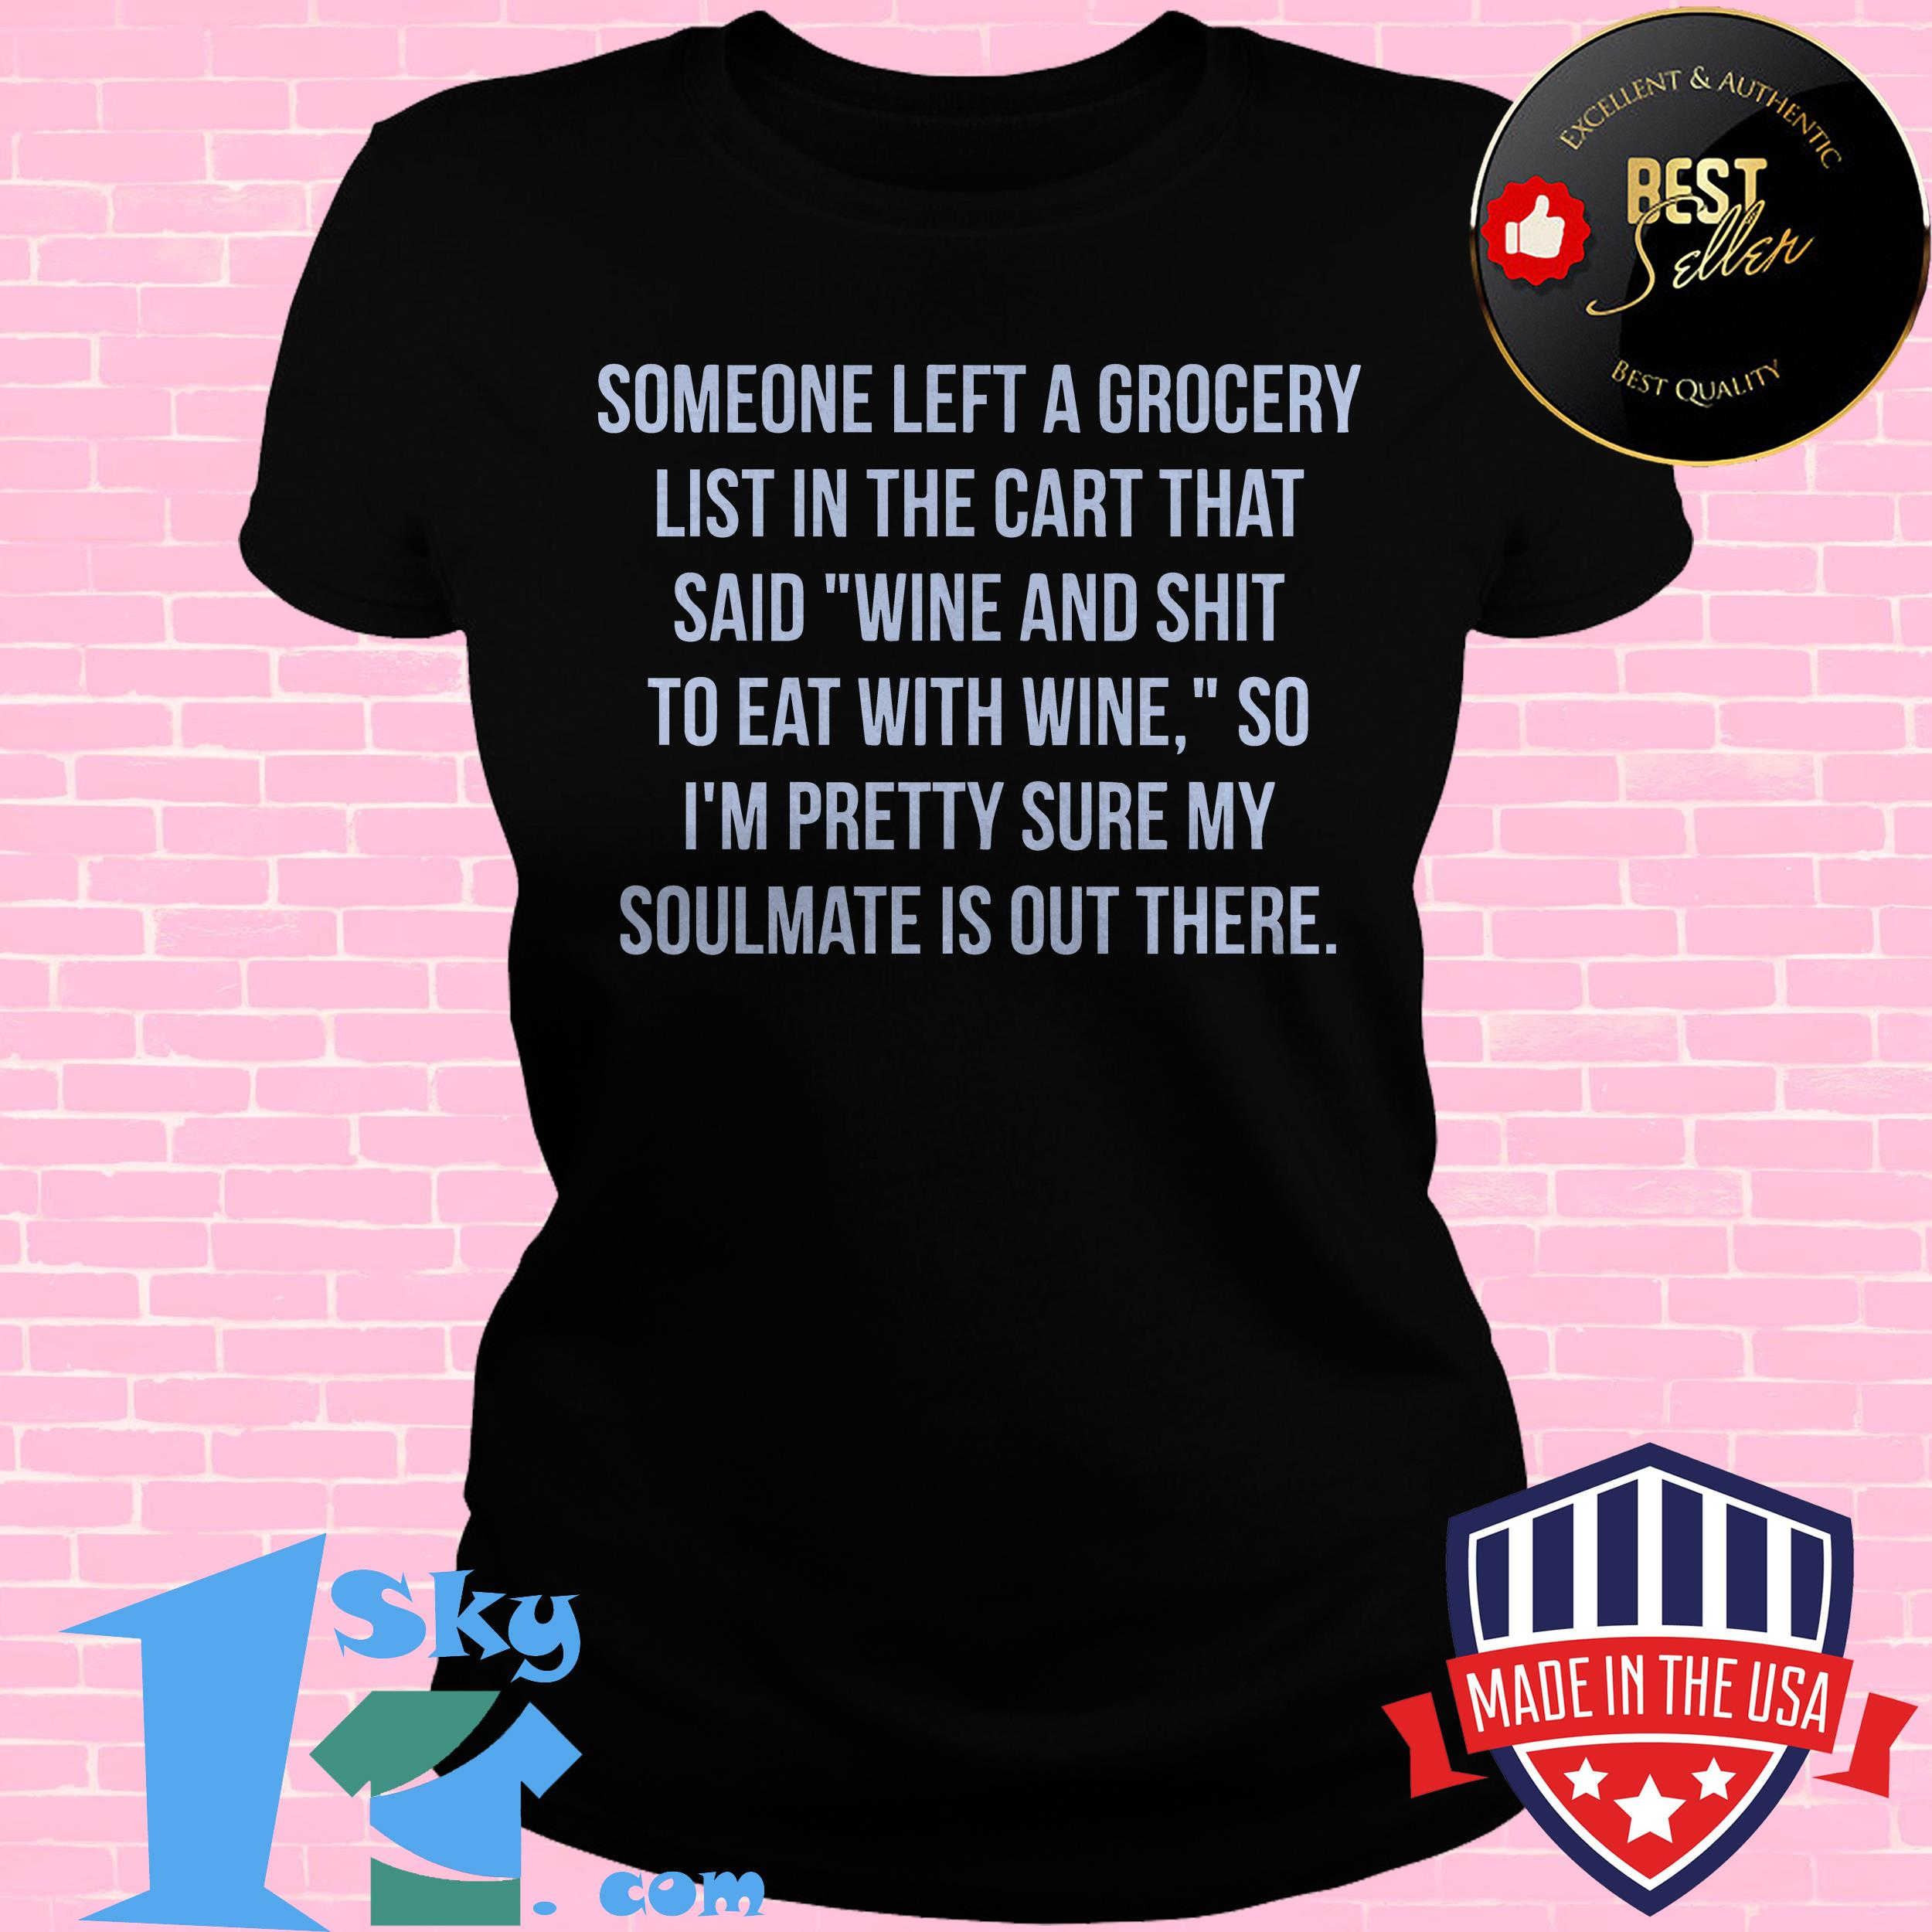 cheese and shit soulmate grocery list ladies tee - Cheese and Shit Soulmate Grocery List shirt